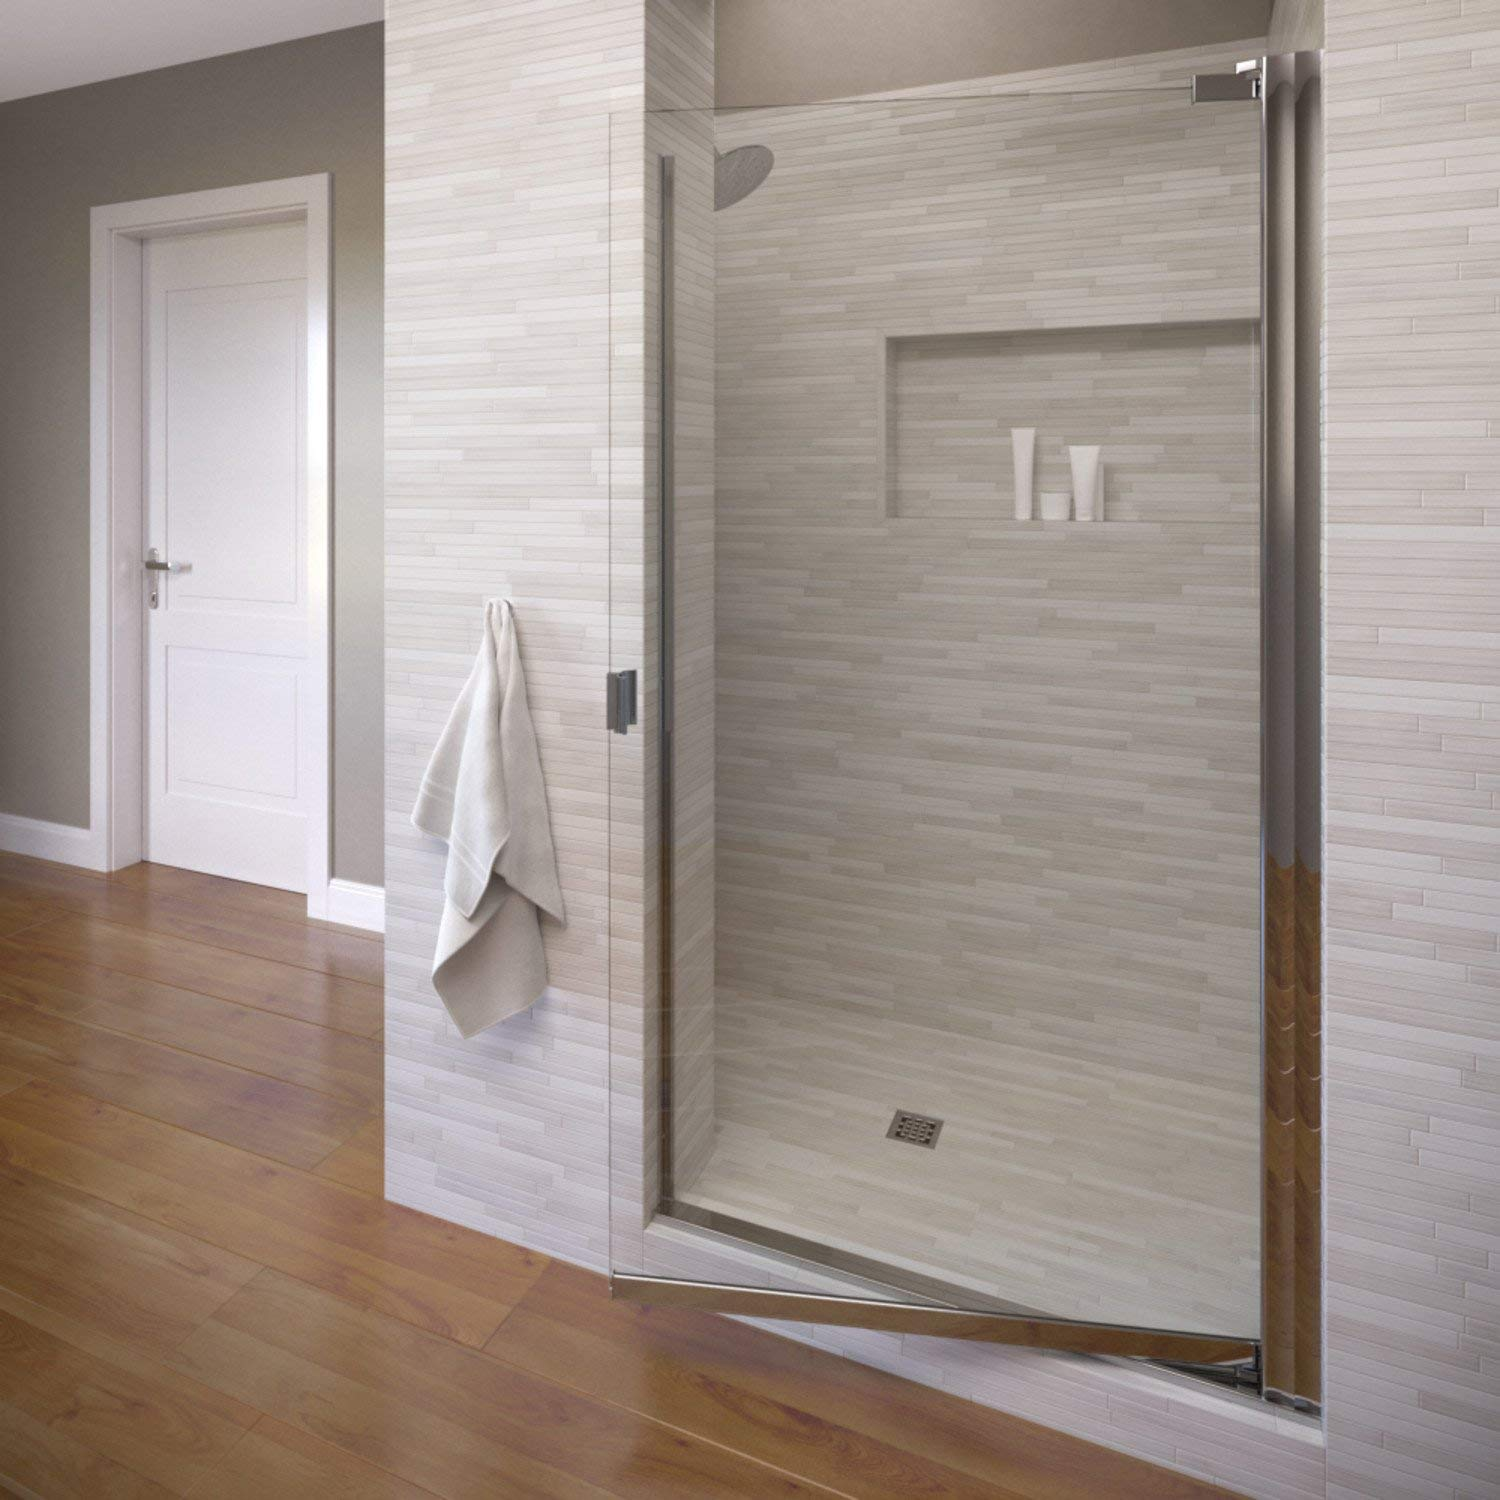 Basco Shower Door Classic Semi-Frameless Pivot Shower Door